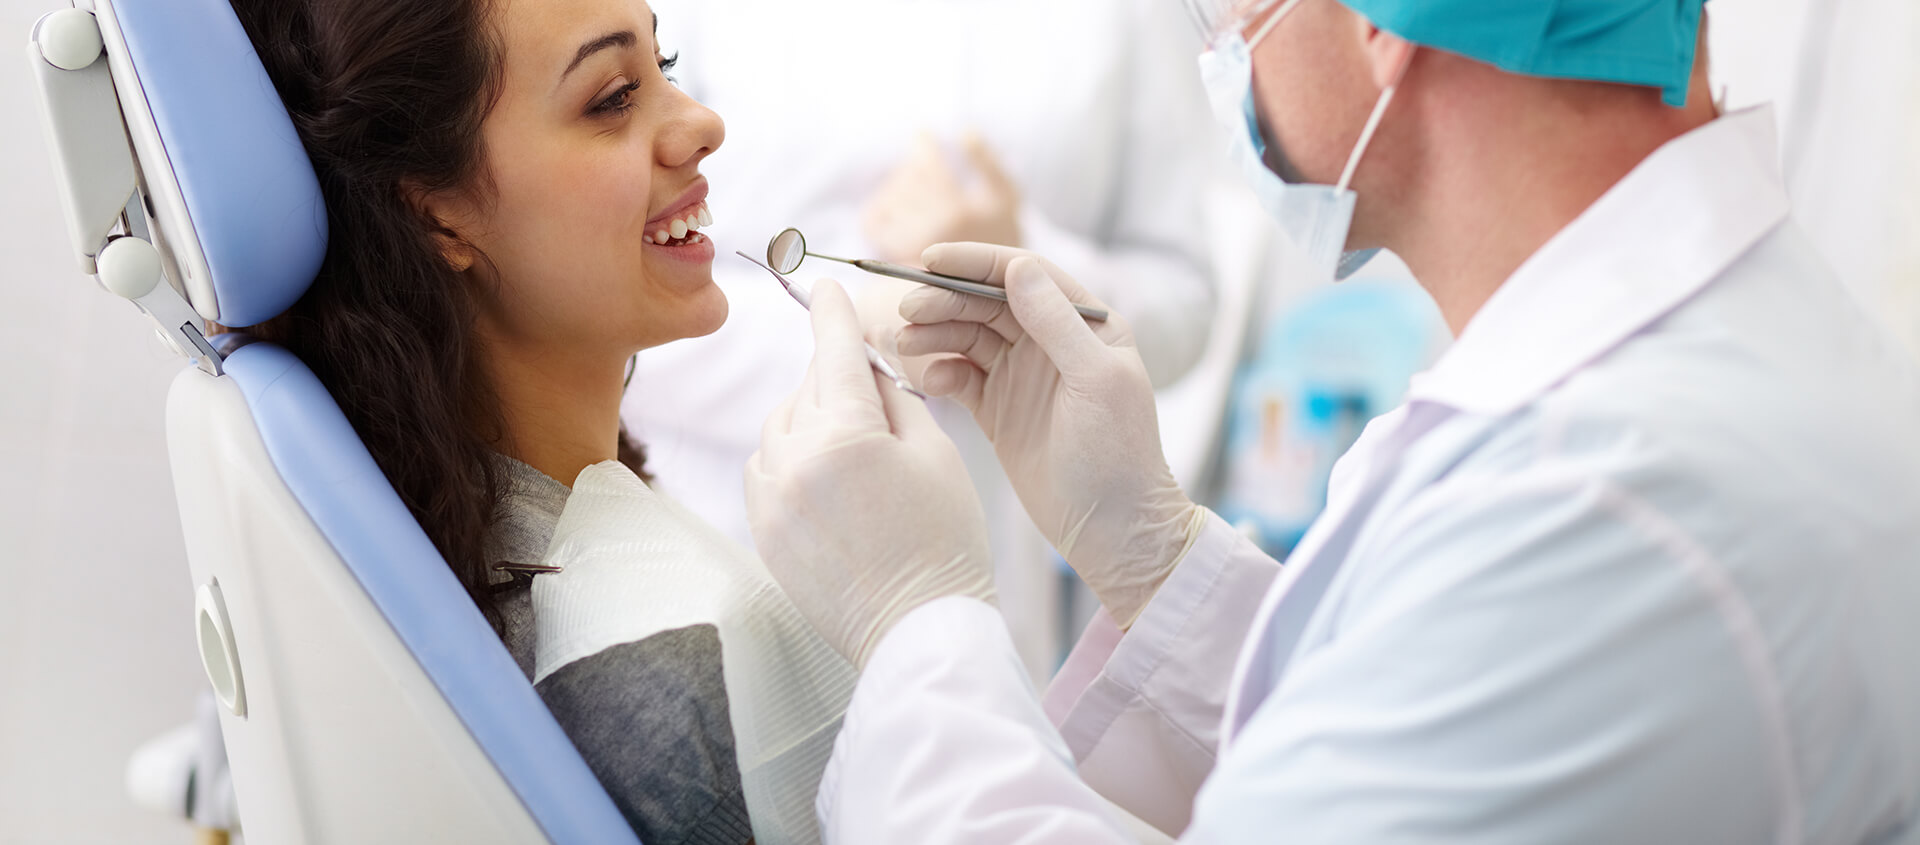 A Kingston, PA Area, Dentist Offers Implants for Teeth Replacement